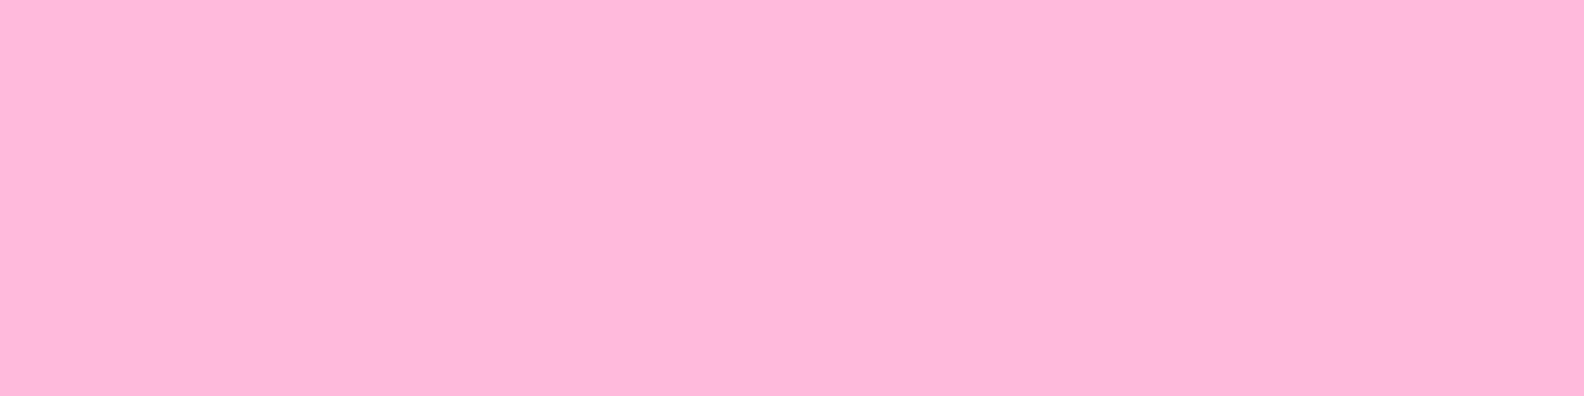 1584x396 Cotton Candy Solid Color Background